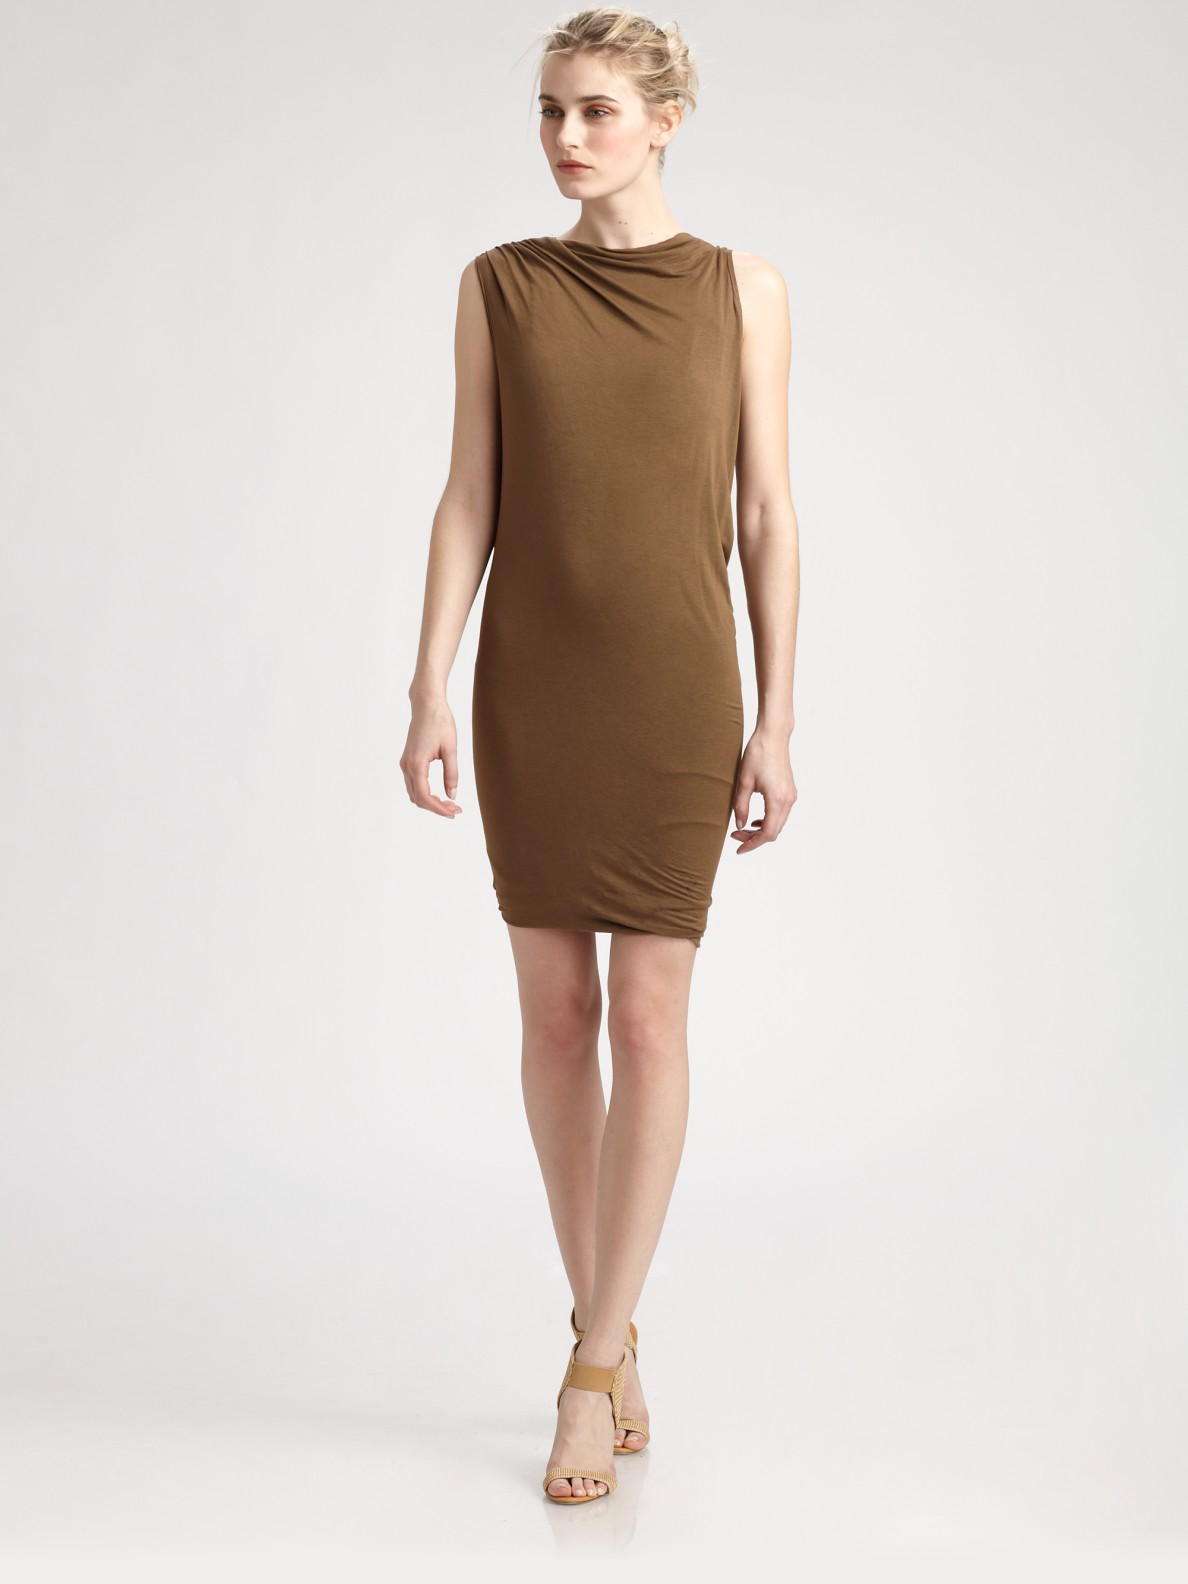 Donna karan new york asymmetrical dress in brown beige for Donna karen new york